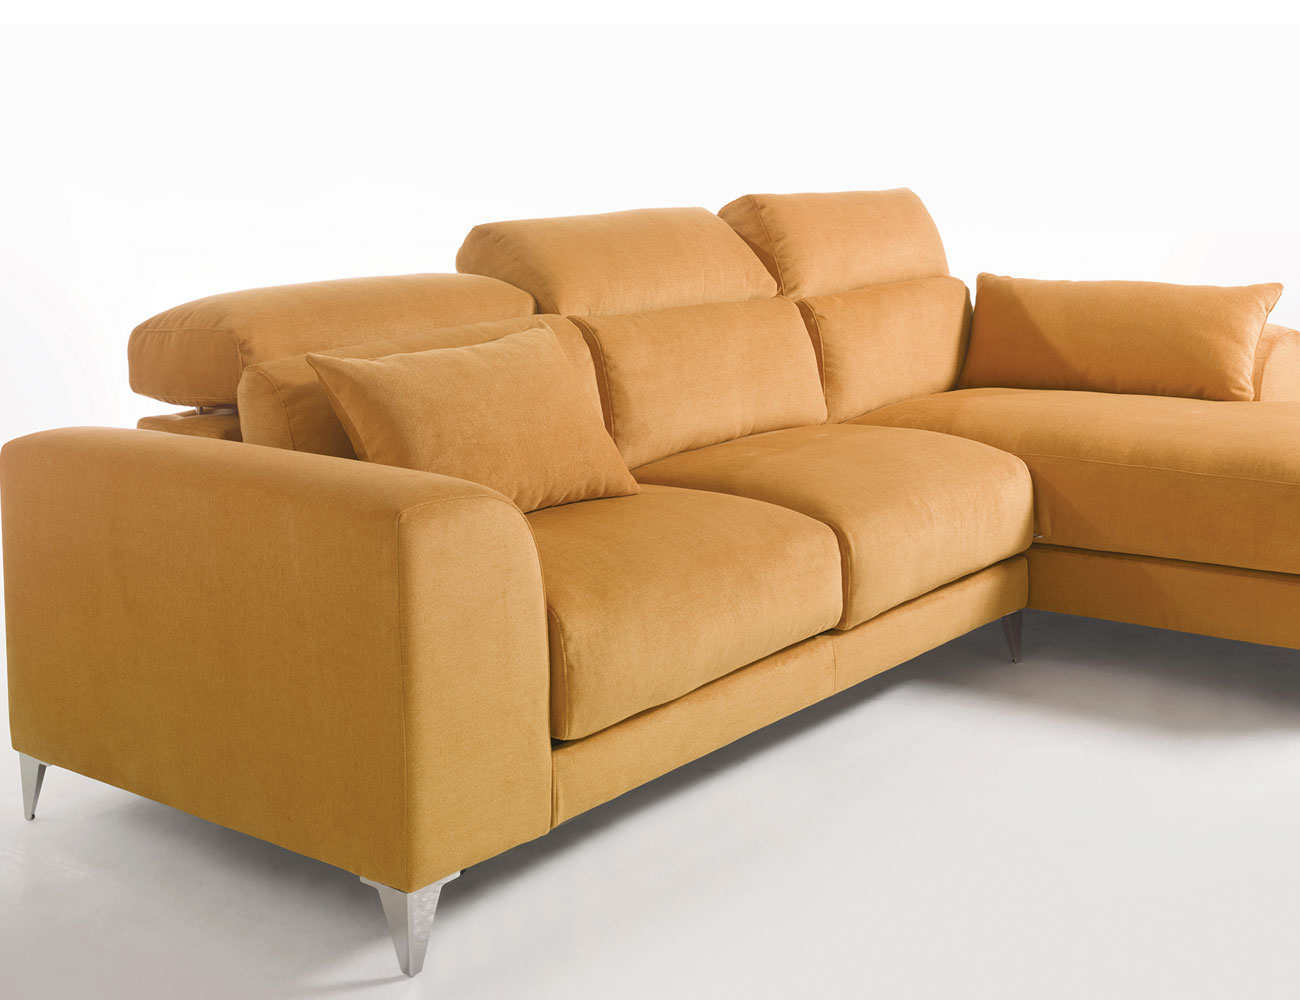 Sofa chaiselongue gran lujo decorativo patas altas amarillo 214